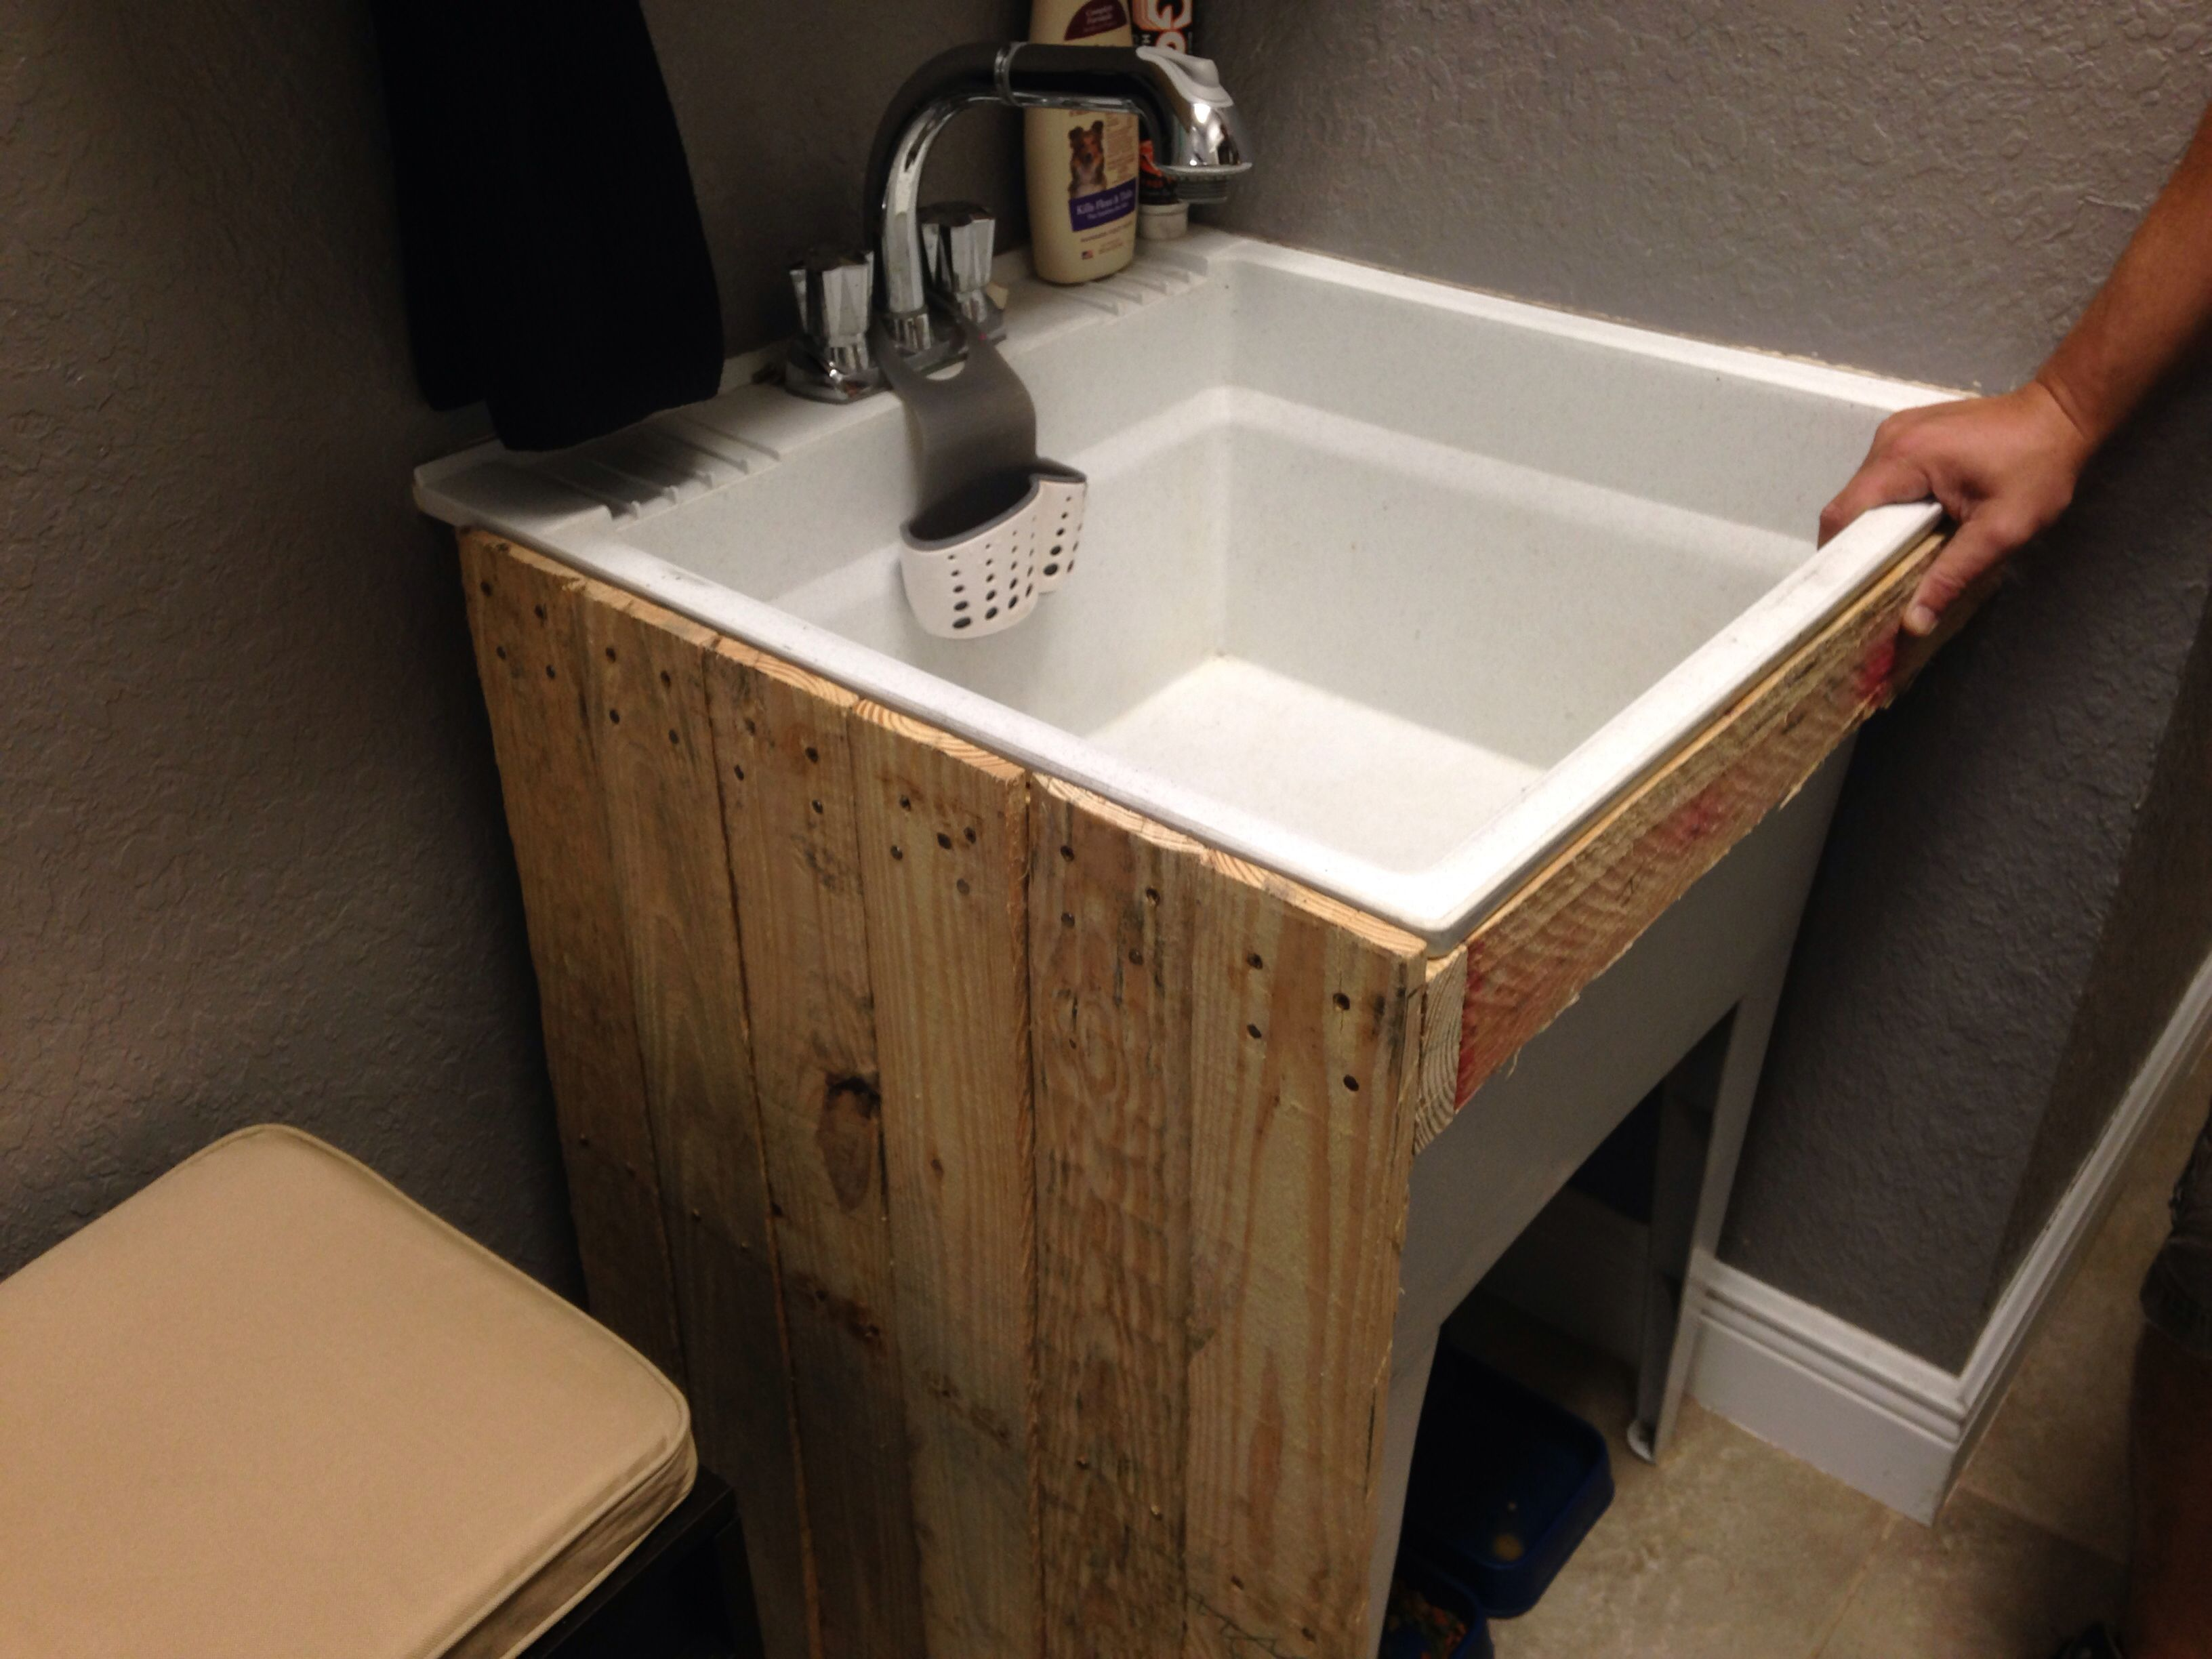 Diy Base Around The Plastic Utility Sink Until I Can Find An Old Porcelain One Laundry Room Makeover Laundry Room Utility Sink Laundry Room Design